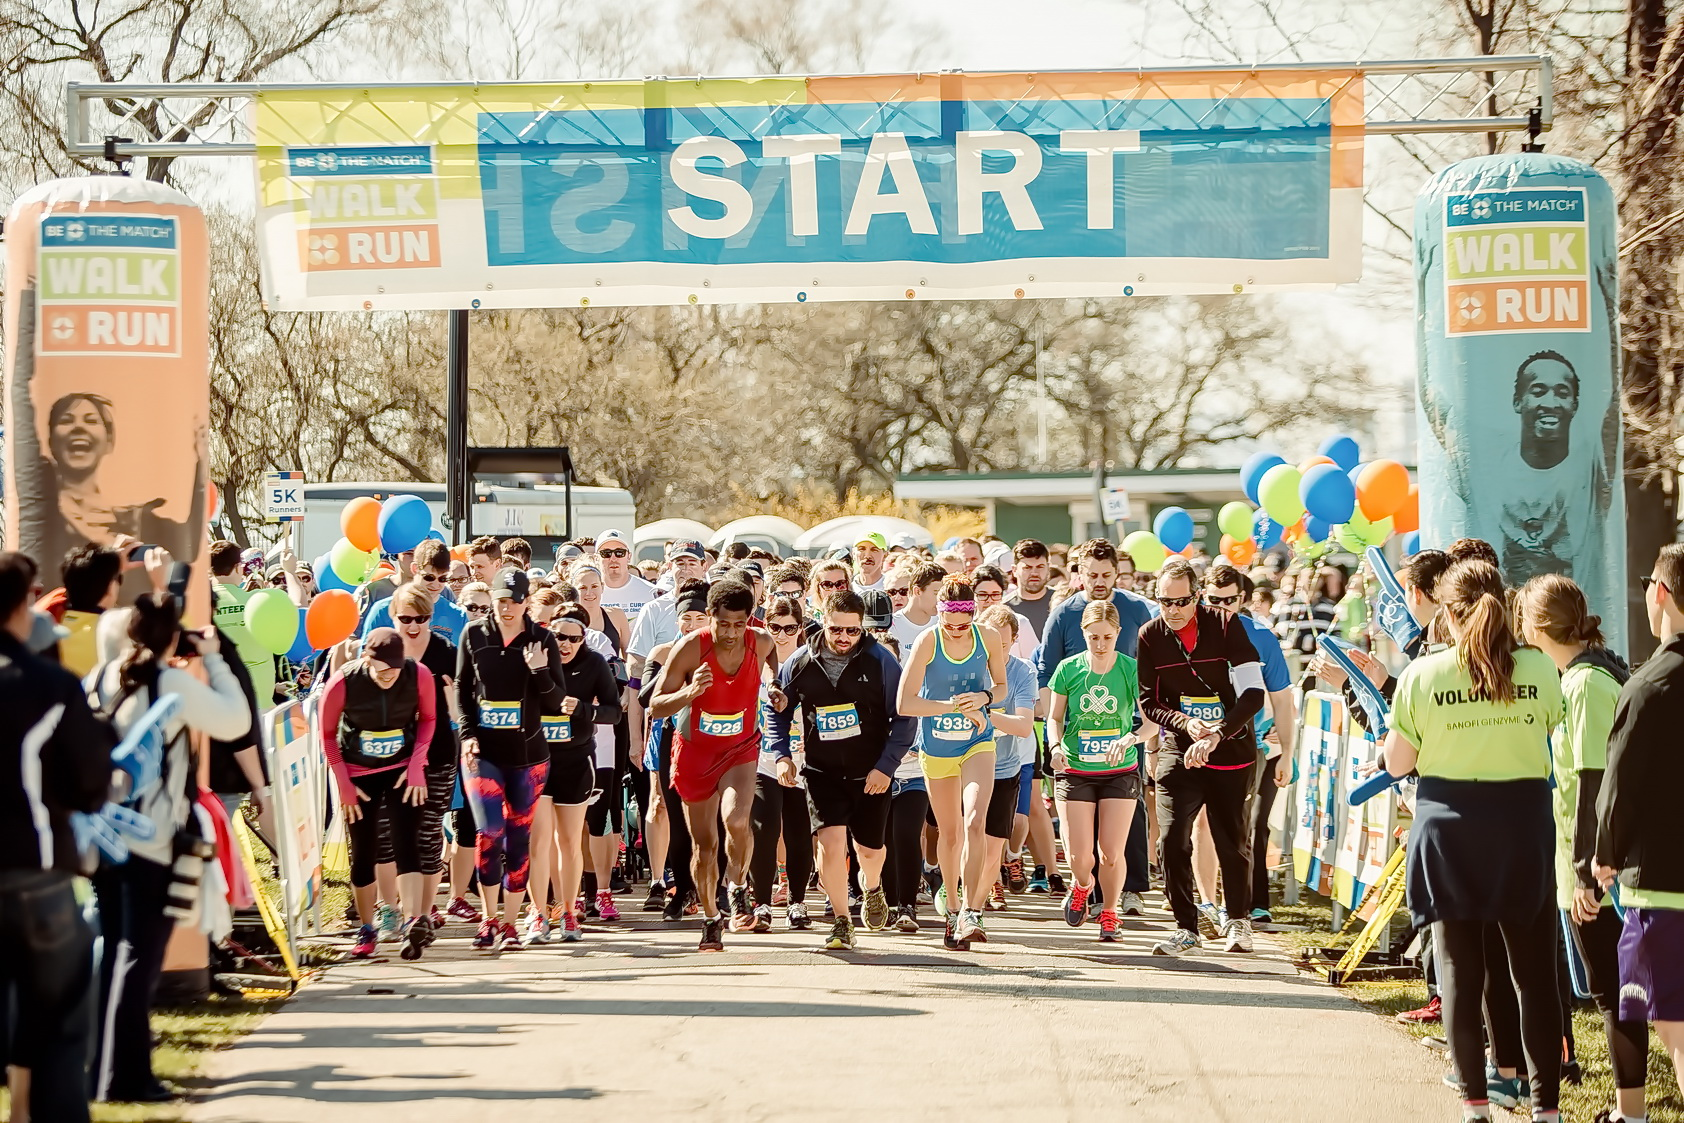 Be the match 5k minneapolis results